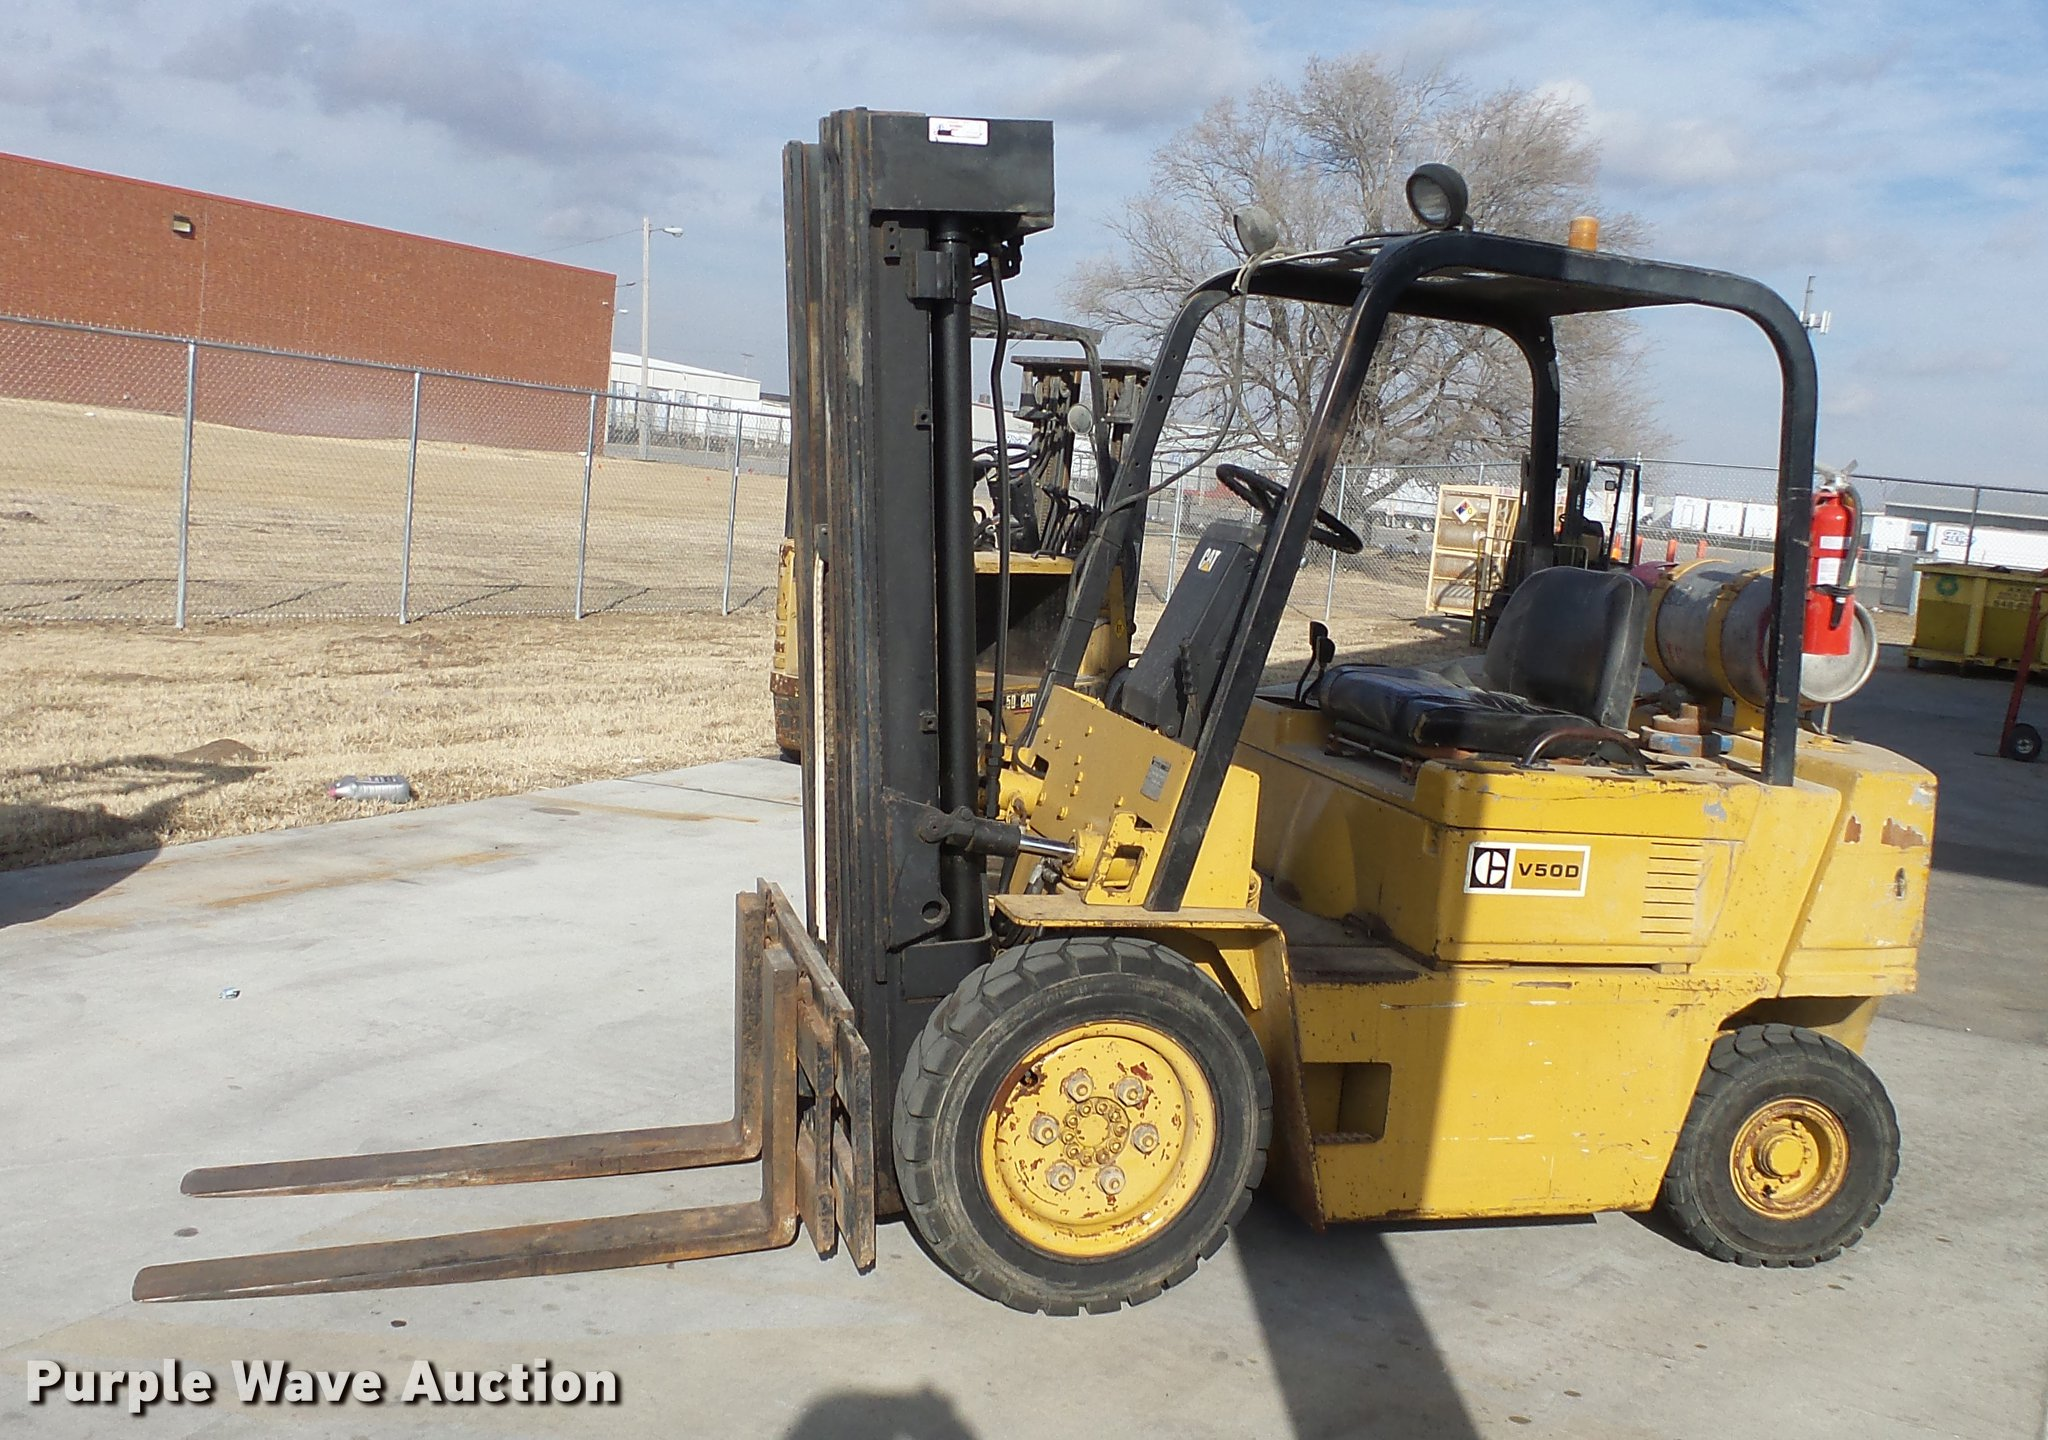 Caterpillar V50D forklift | Item DC0555 | SOLD! February 21 ... on electric forklift wiring diagram, caterpillar lift truck parts catalog, jungheinrich forklift wiring diagram, crown forklift wiring diagram, caterpillar hydraulic diagram, caterpillar forklift battery, caterpillar forklift parts, caterpillar forklift transmission, forklift controls diagram, caterpillar generator wiring diagram, caterpillar t50d forklift manual, caterpillar forklift wheels, machine controls network diagram, caterpillar forklift brake diagram, daewoo forklift wiring diagram, caterpillar forklift water pump, forklift schematic diagram, caterpillar forklift service, caterpillar forklift distributor, tcm forklift wiring diagram,